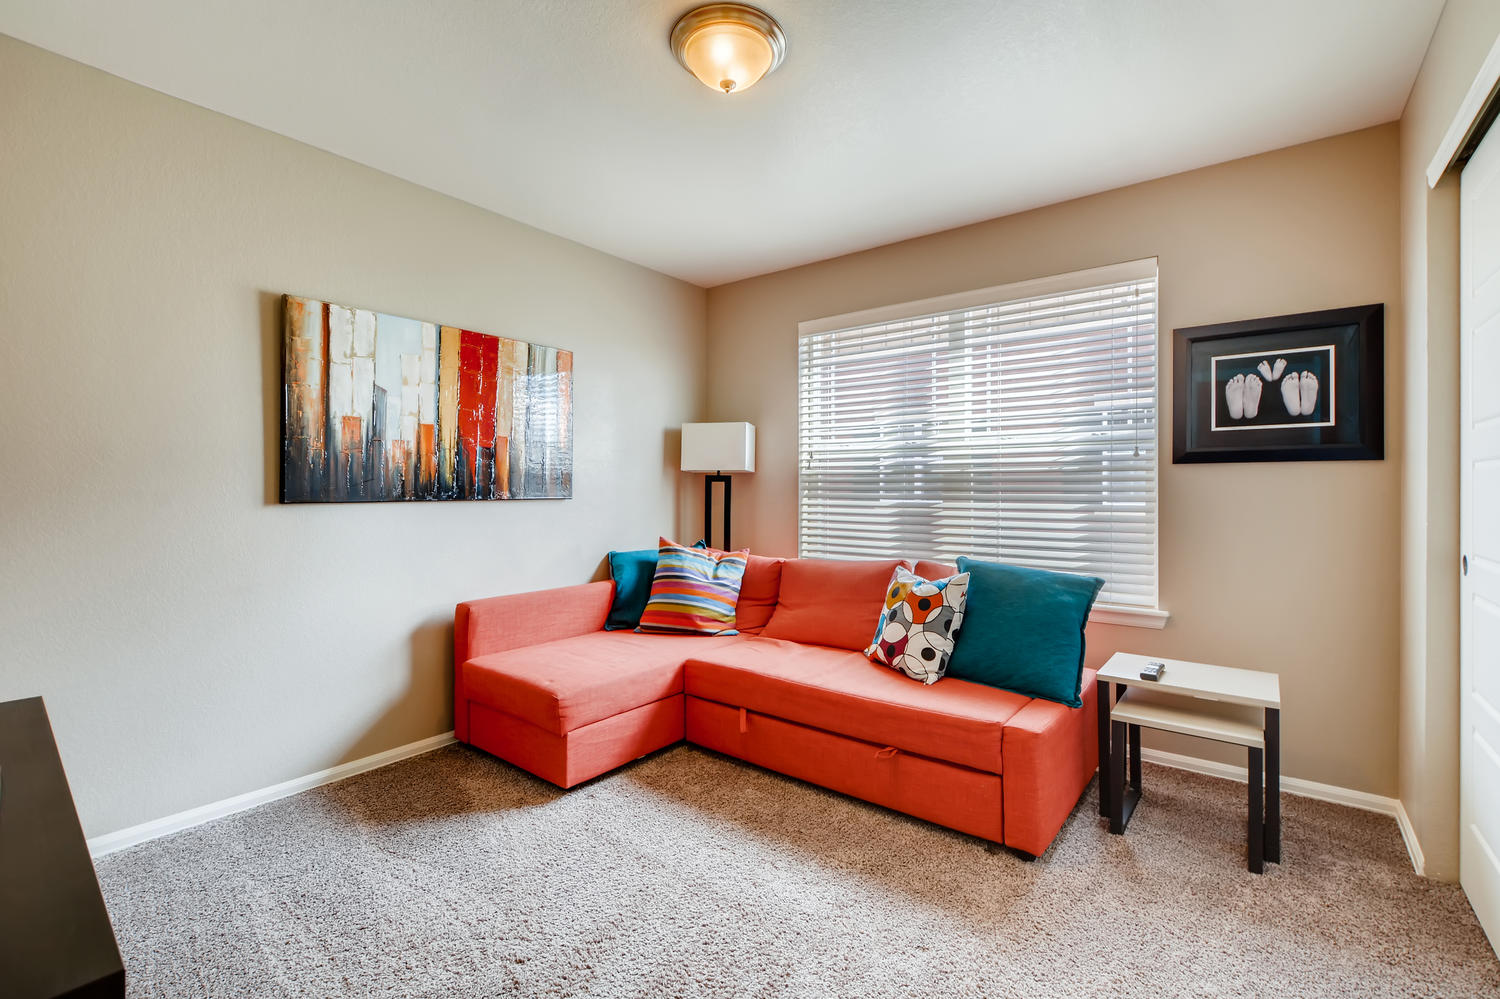 REAL ESTATE LISTING: 2182 Steppe Dr Longmont Bedroom #3